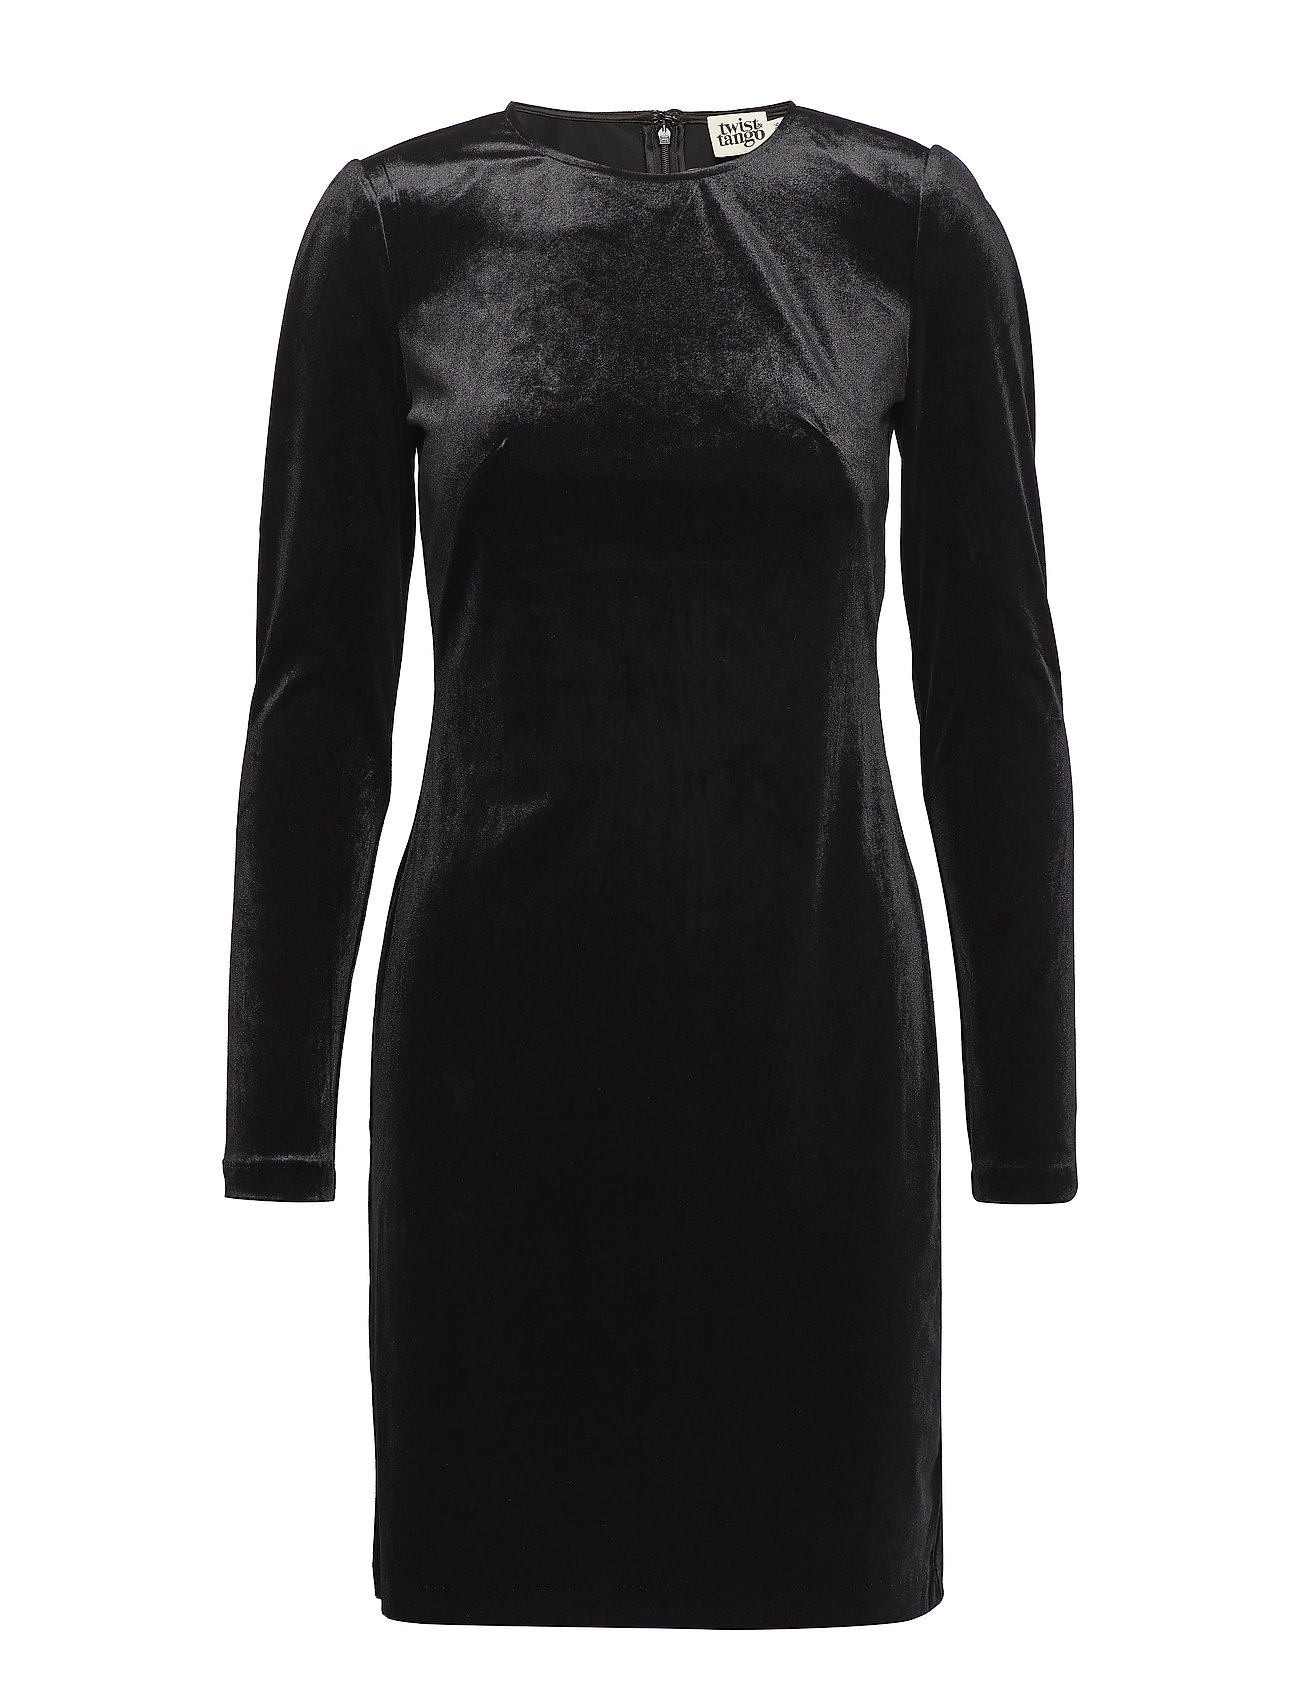 Twist & Tango Ellie Velvet Dress - BLACK